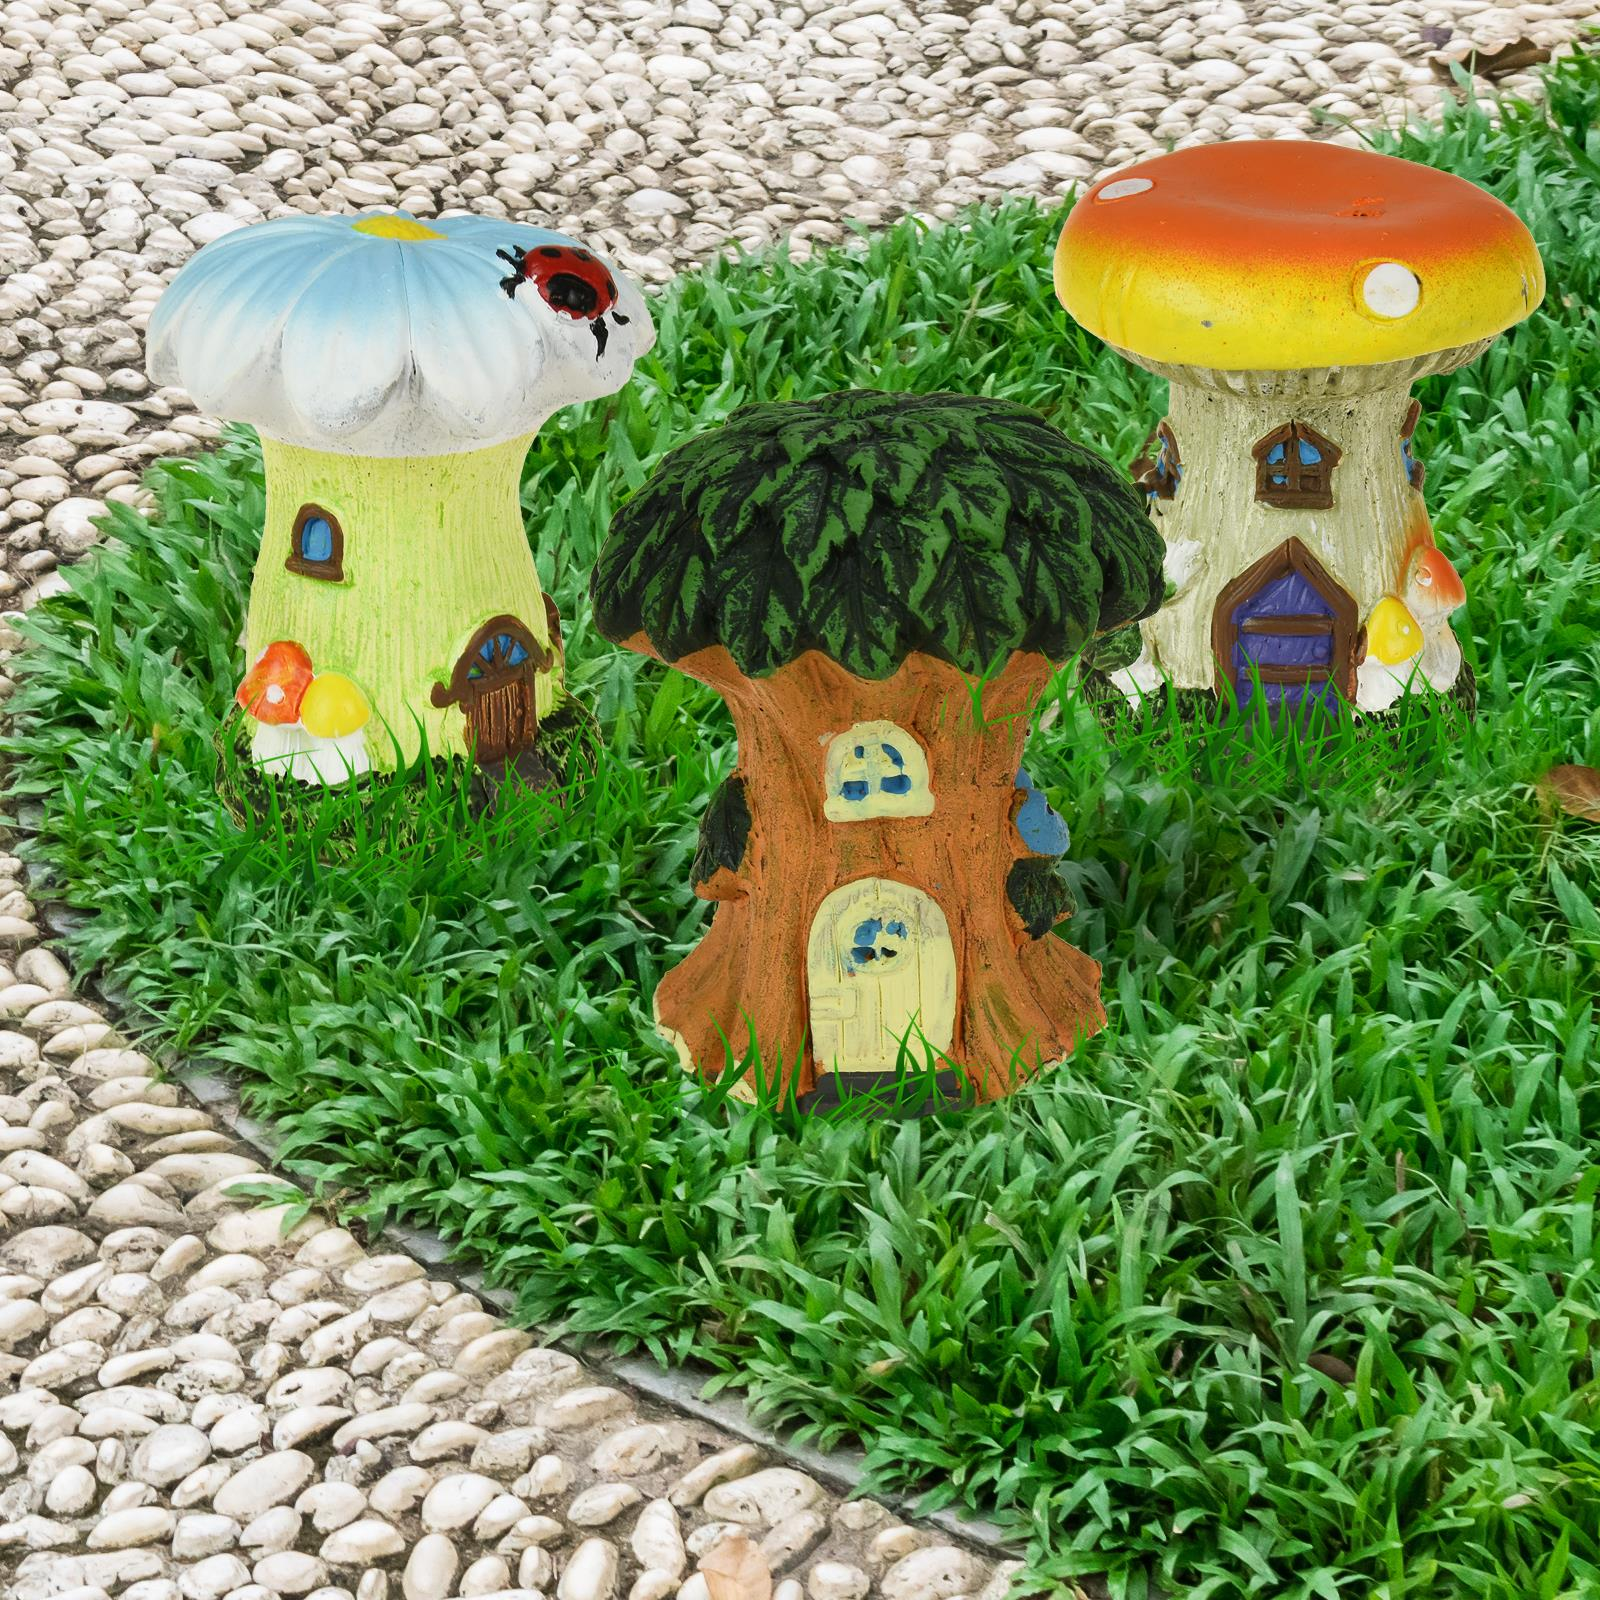 Miniature-Fairy-Enchanted-Garden-Home-Forest-Magical-Secret-Woodland-Fairies thumbnail 36